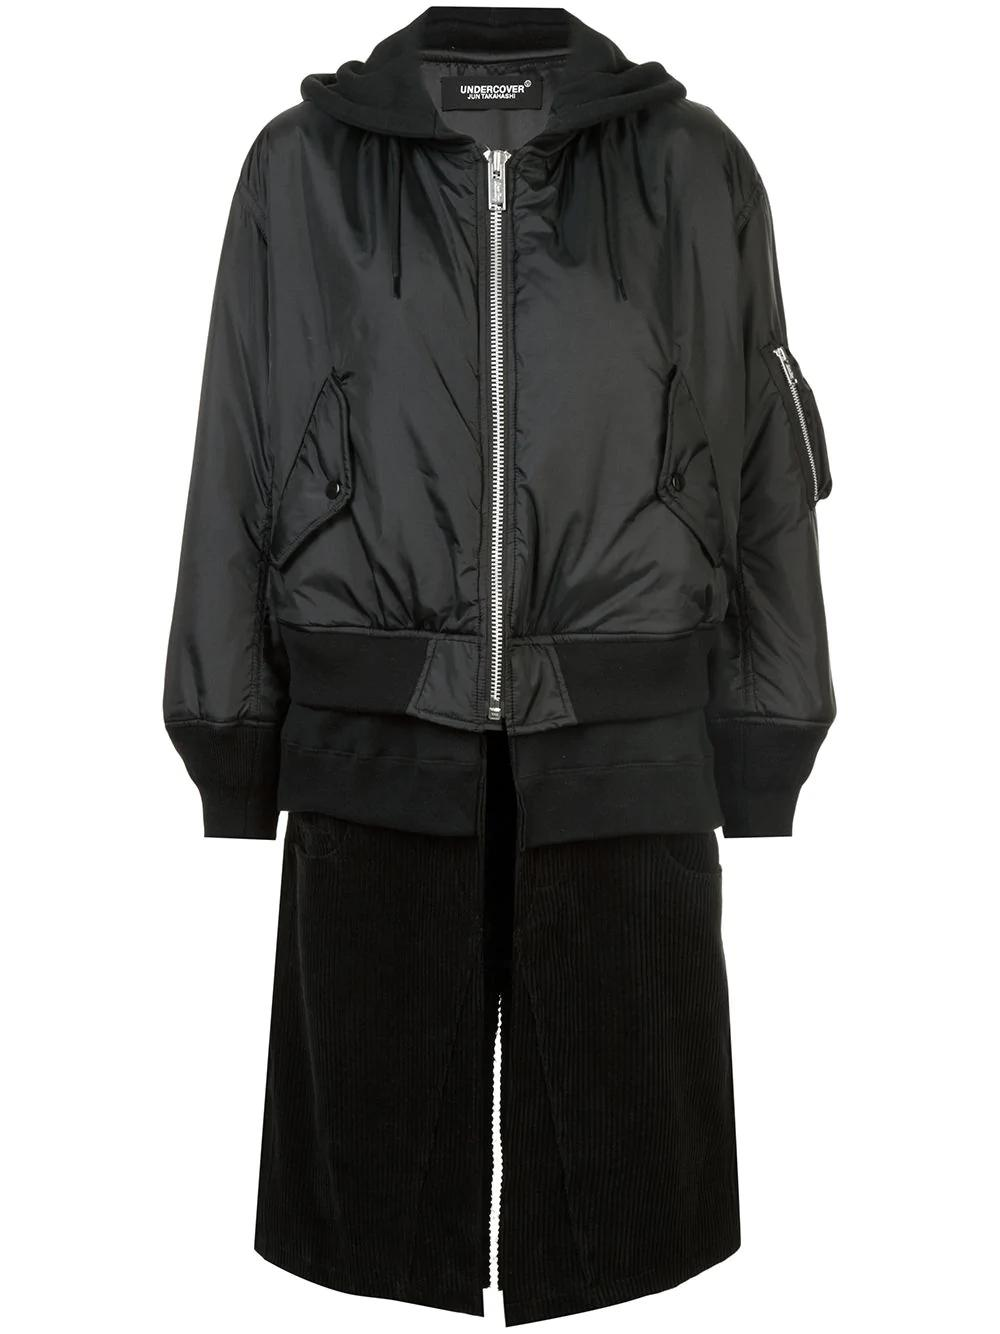 Undercover Layered Bomber Jacket In Black